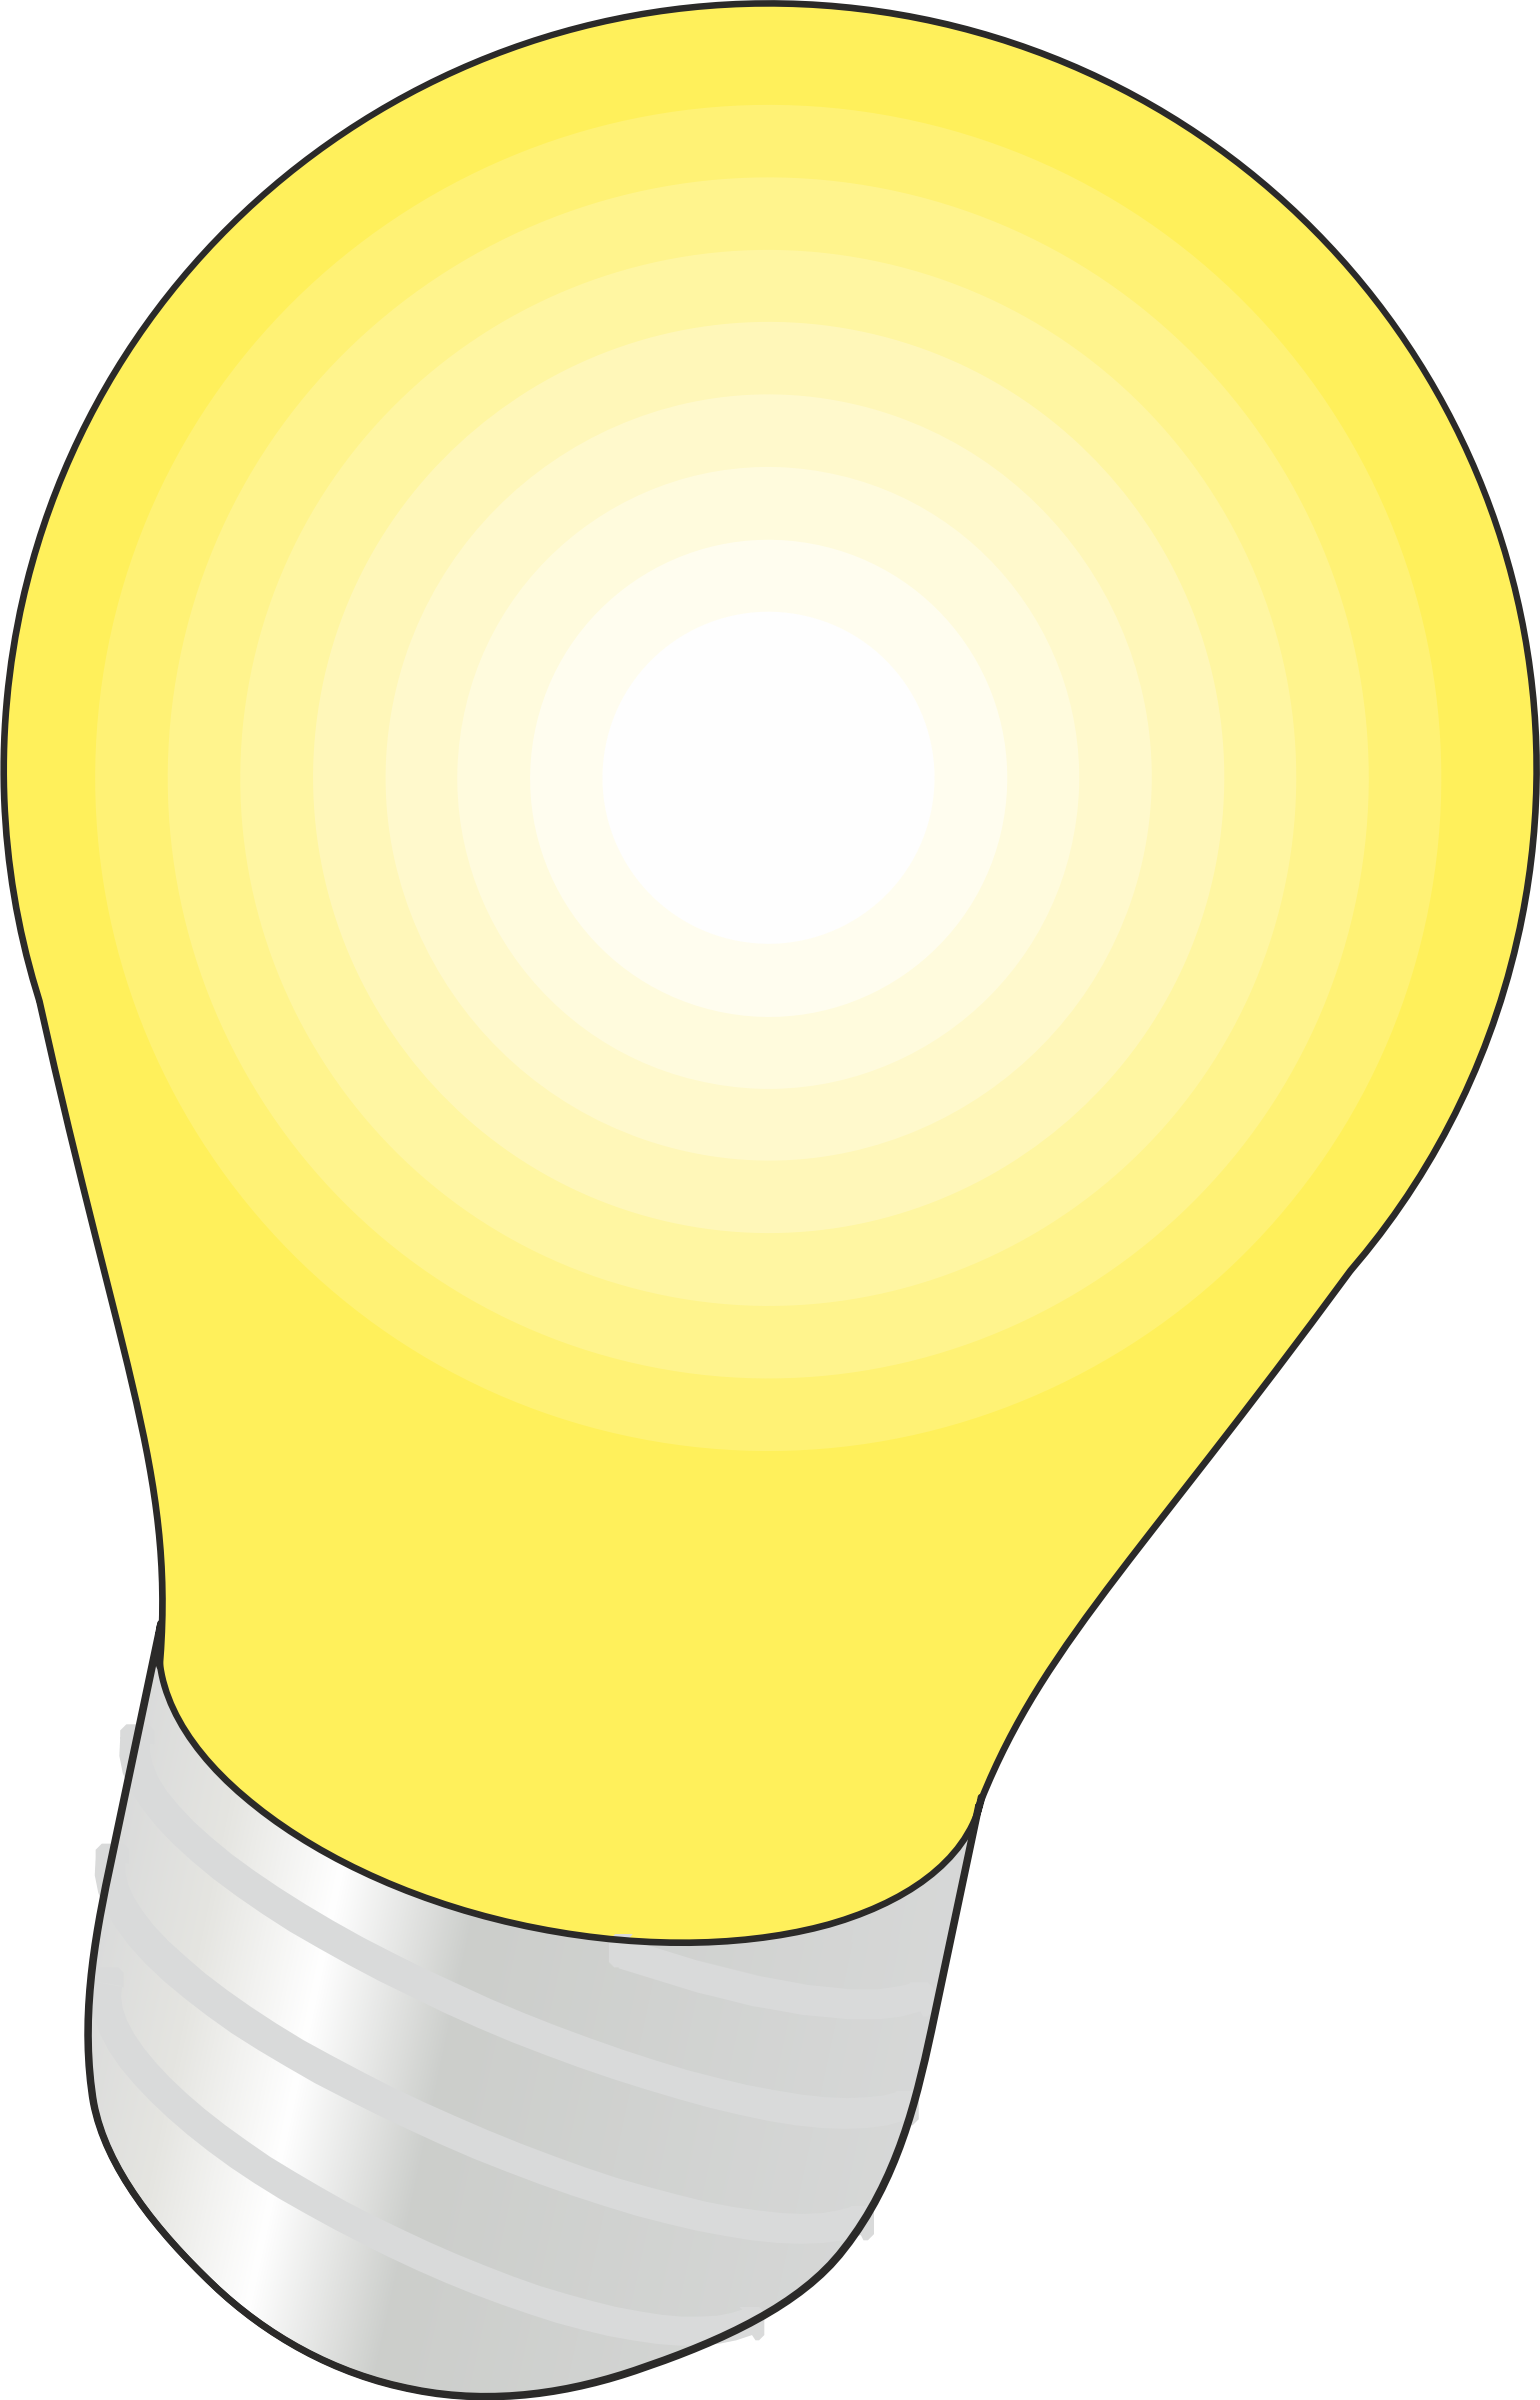 Lightbulb by pnx